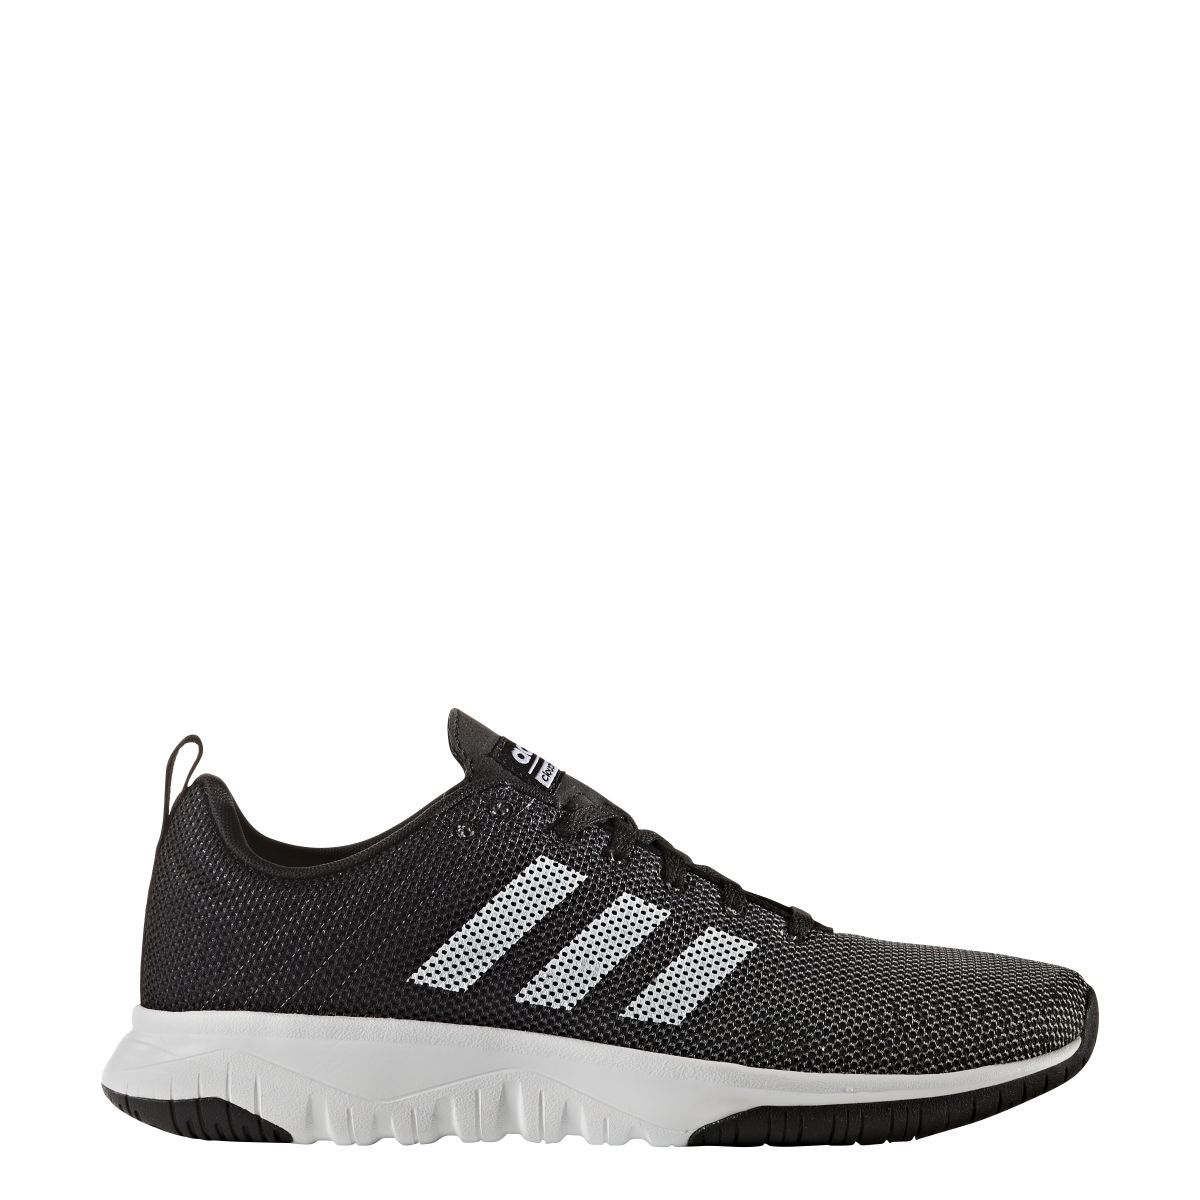 Adidas Cloudfoam Super Flex Men 's Running Shoes AW4172